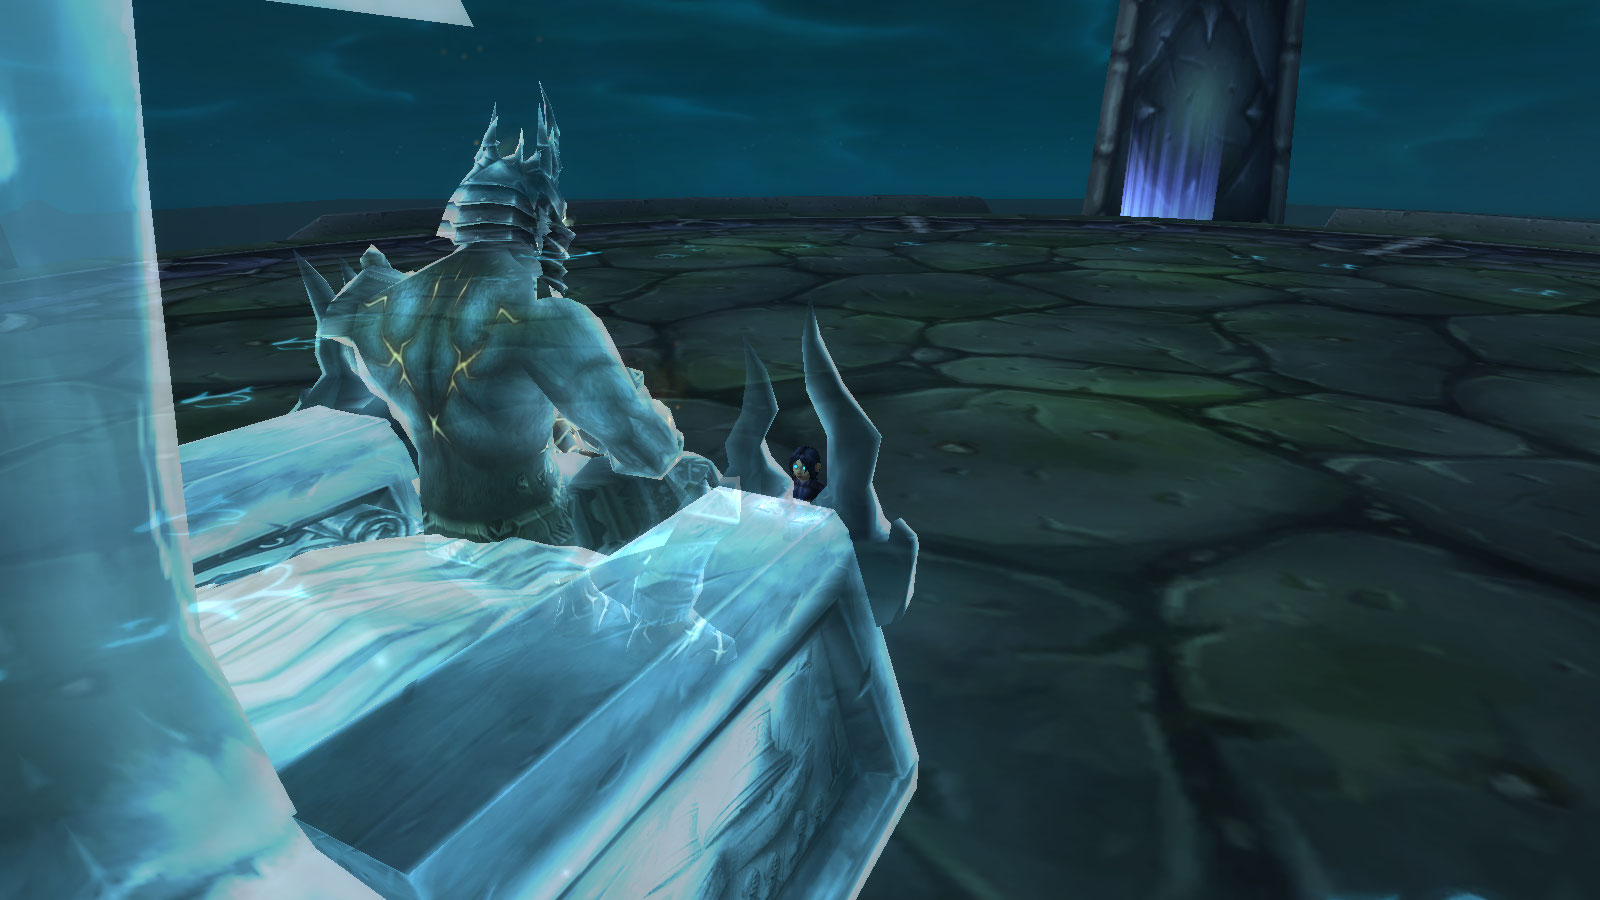 Warcraft 3 The Frozen Throne Wallpaper Macabre Guard Like Wallpapers